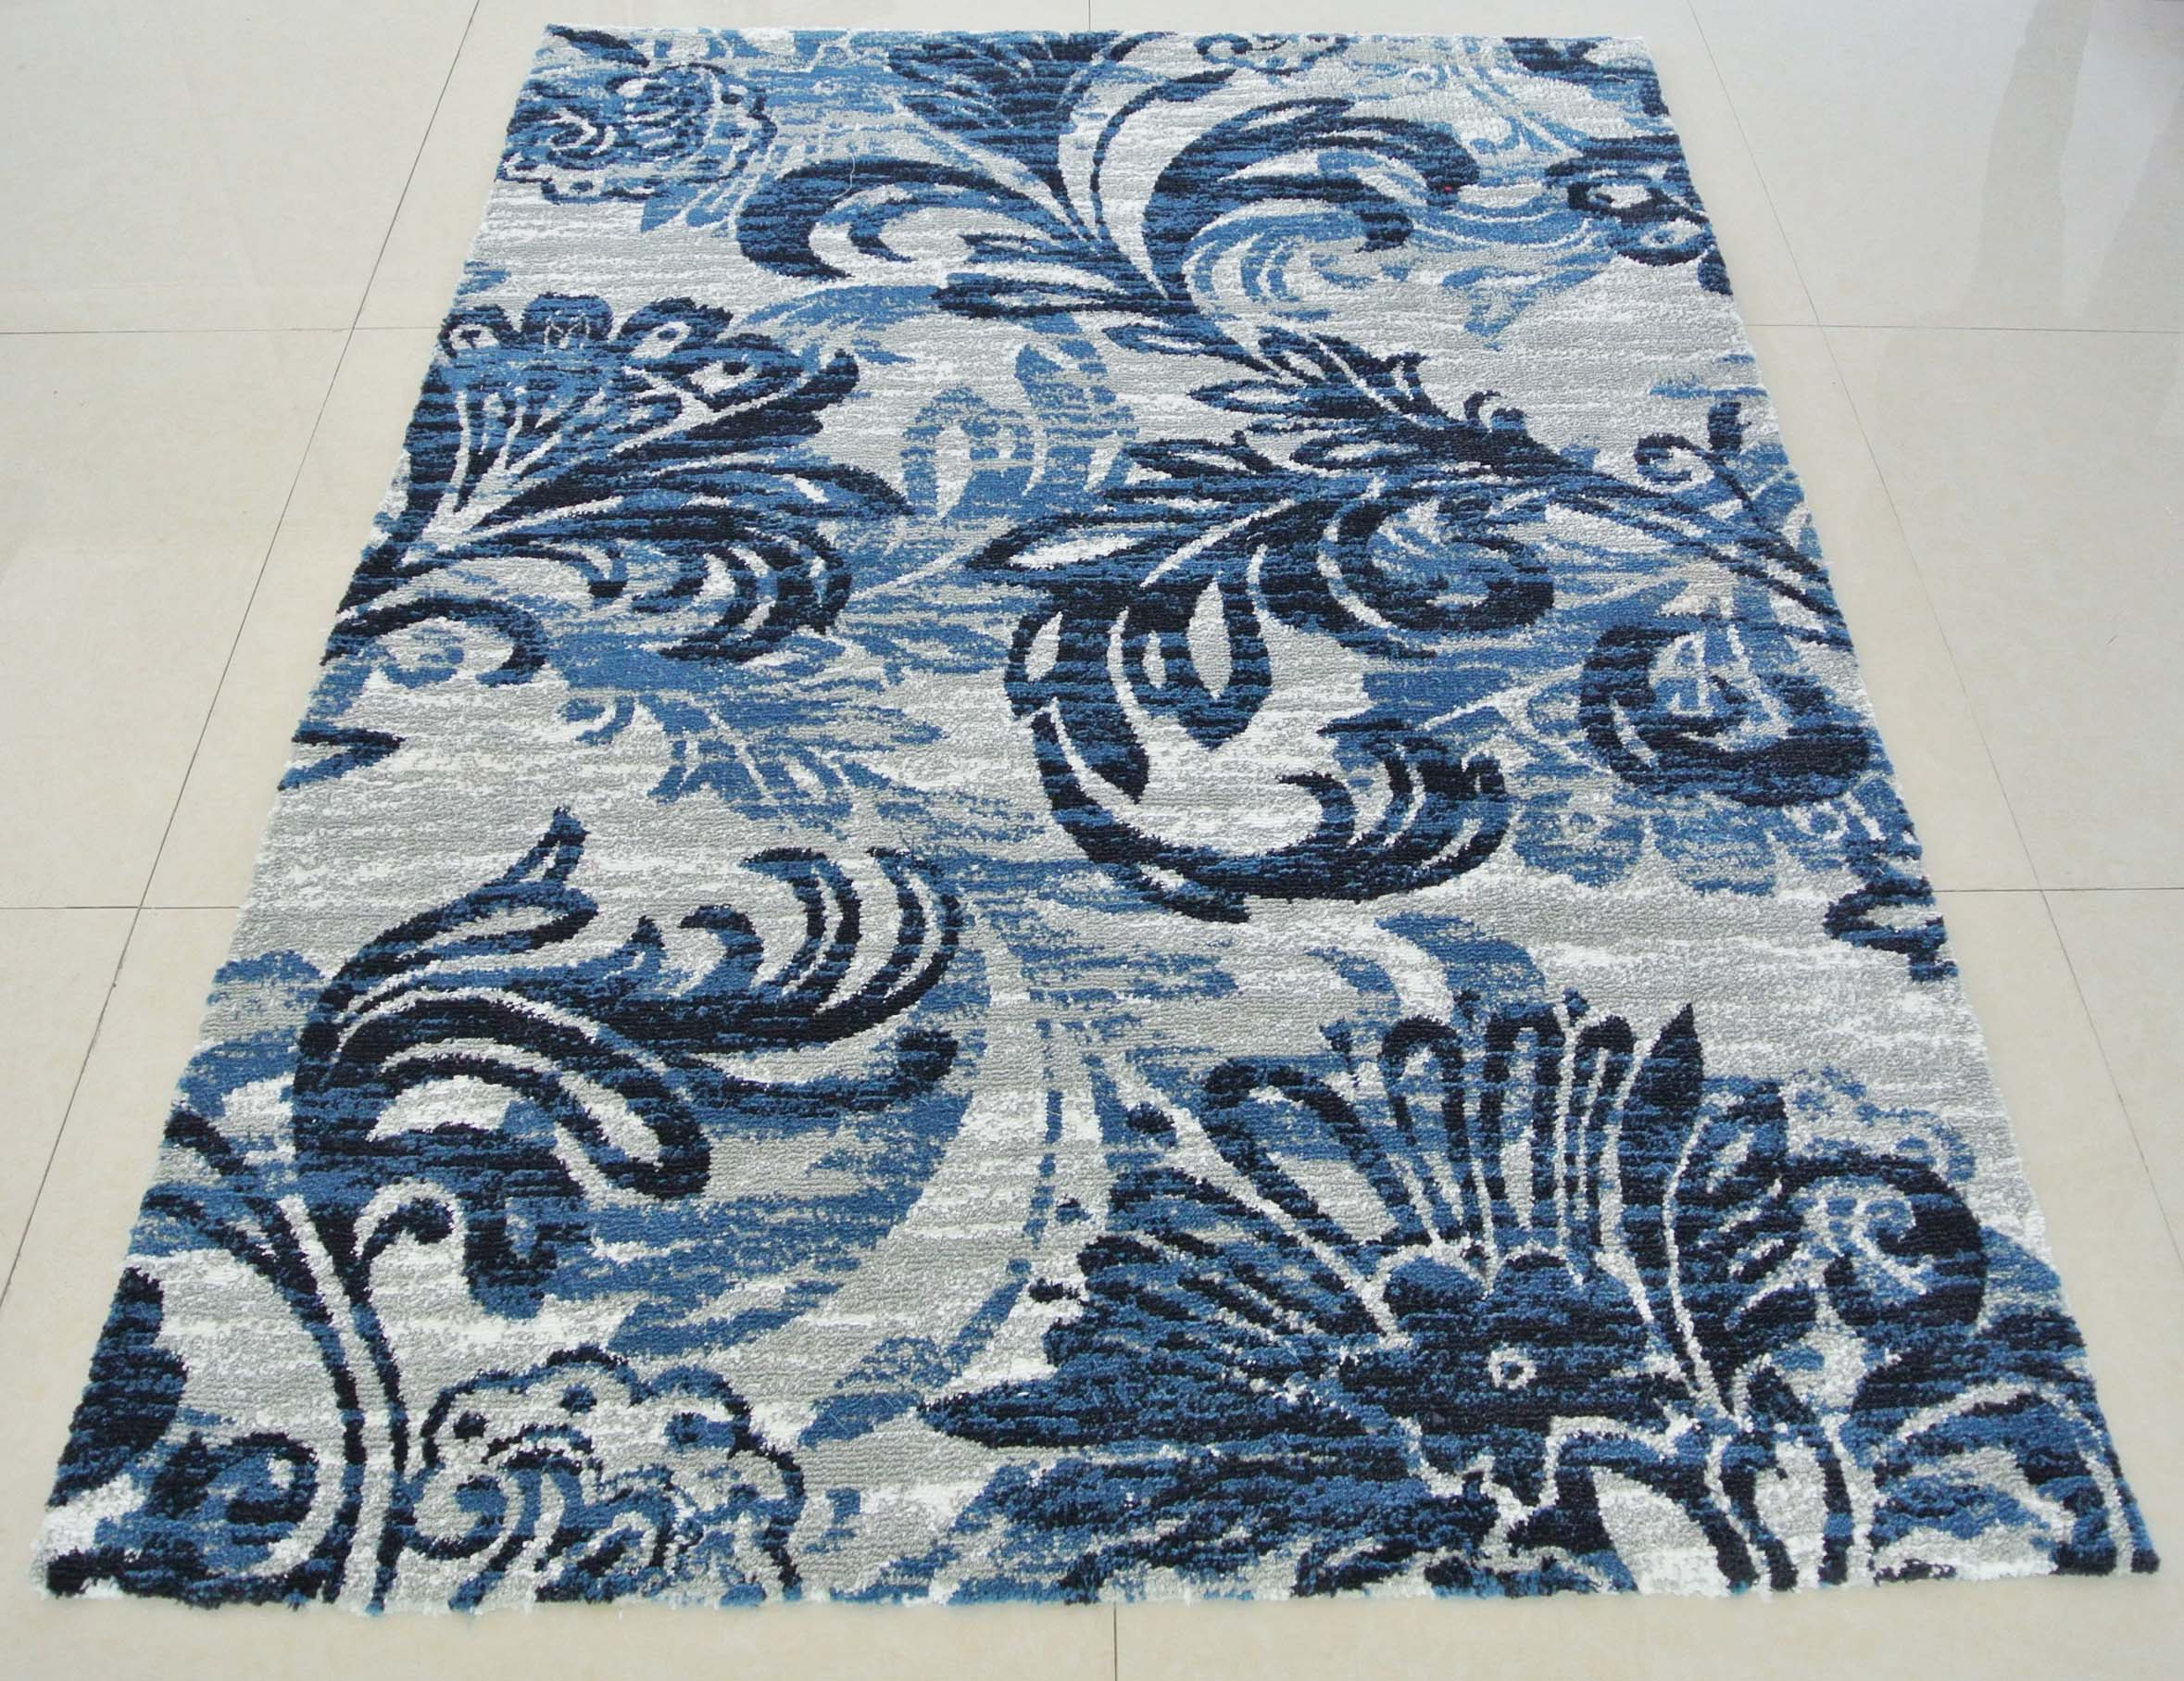 Weft Knitting Carpet